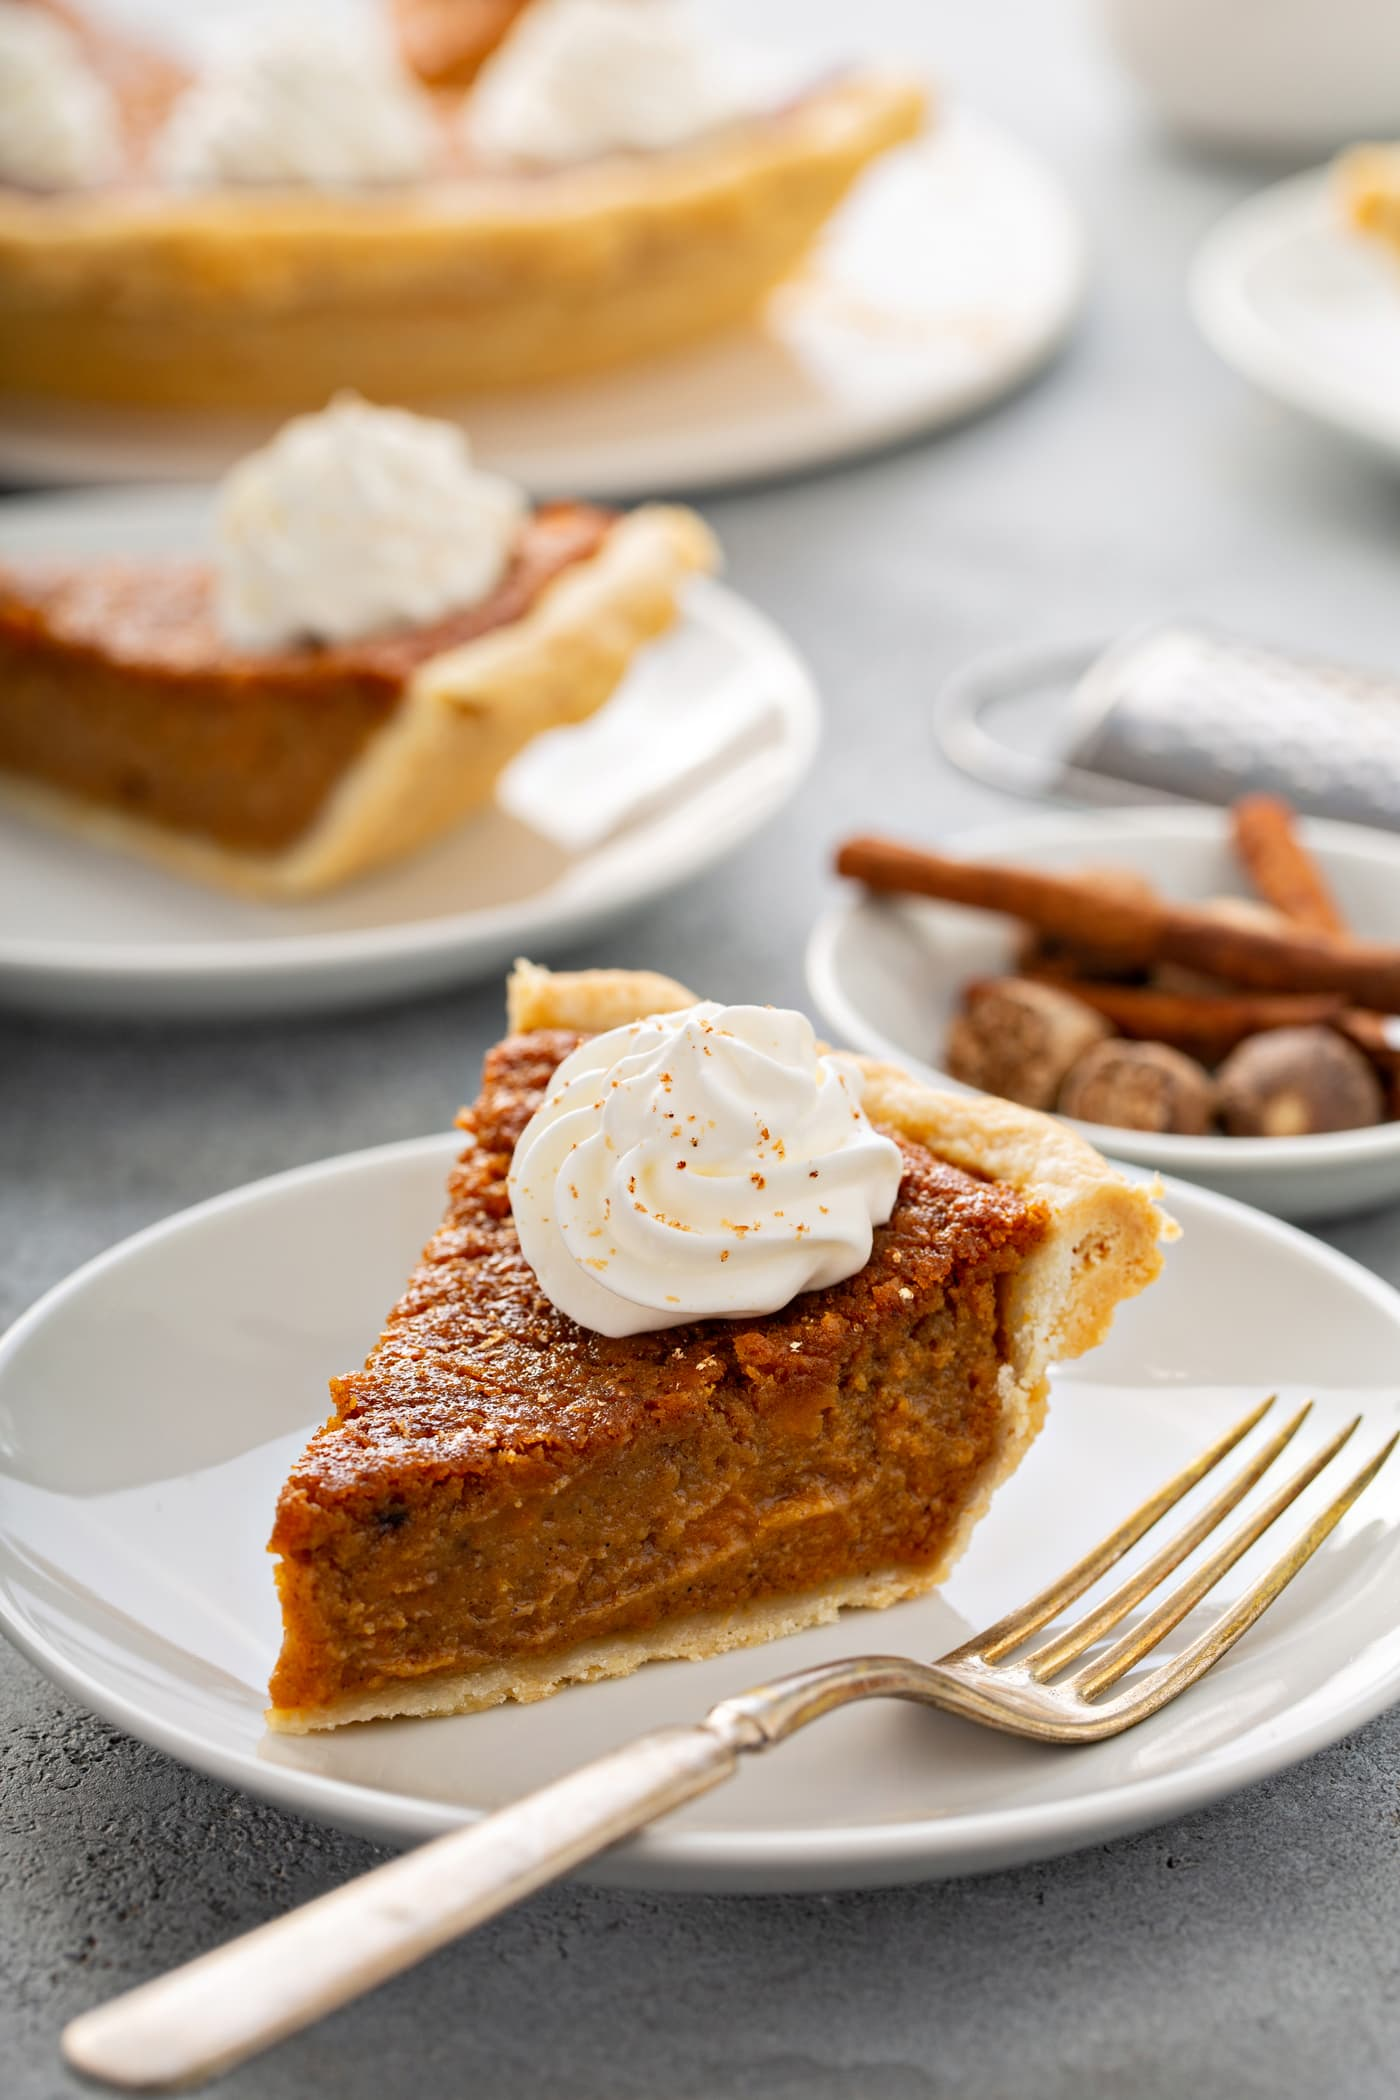 A photo of a slice of sweet potato pie sitting on a white plate with a fork sitting next to it and other servings of pie in the background.